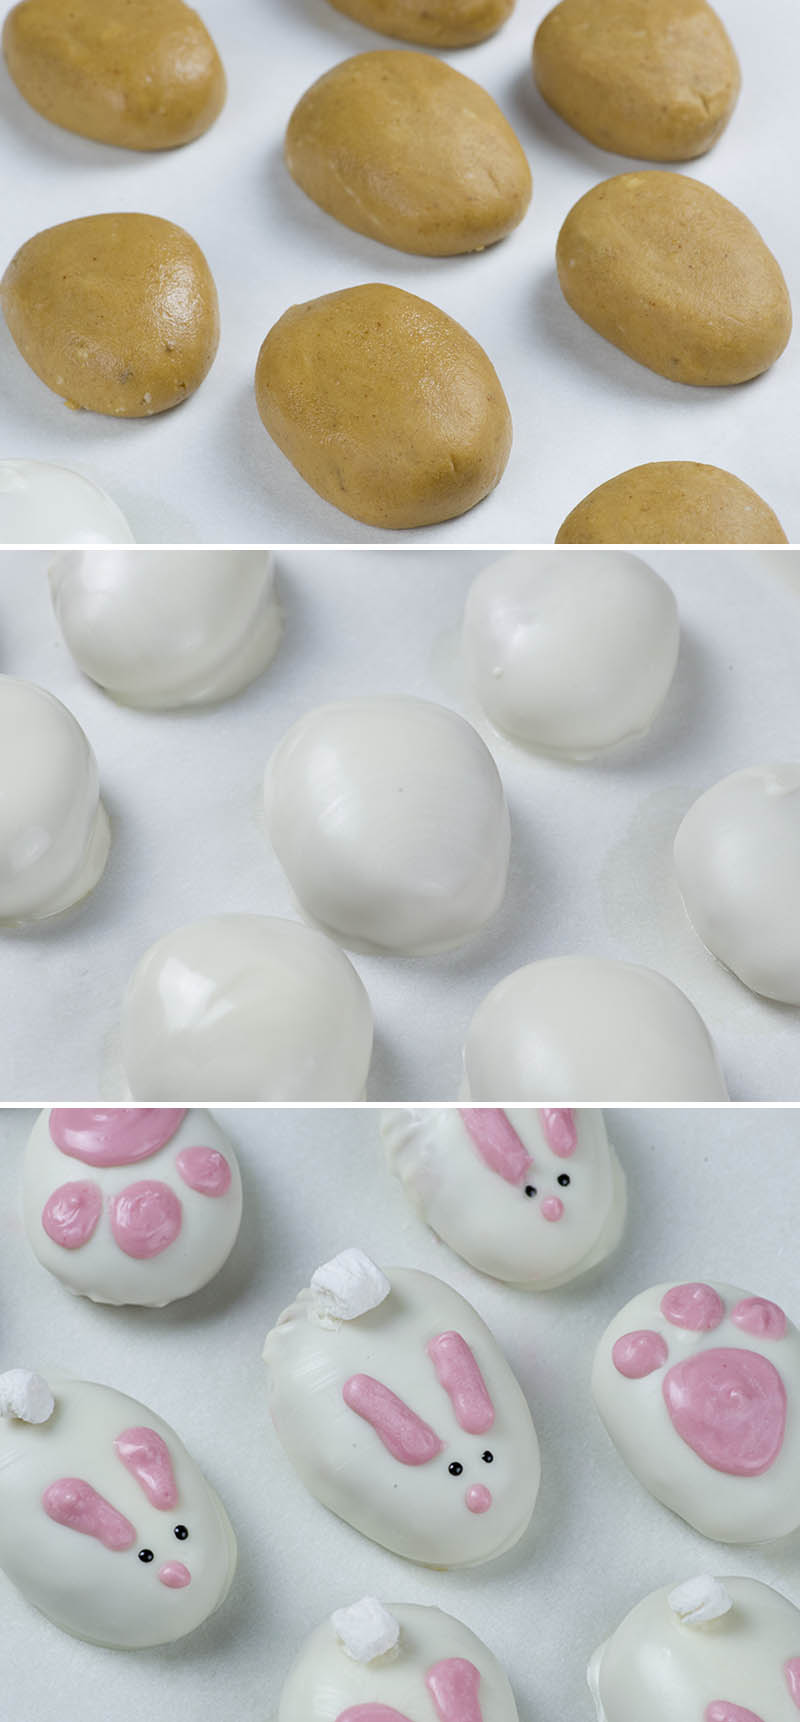 Tree steps image - peanut butter balls, whitechocolate dipped balls and finished Easter bunnies.